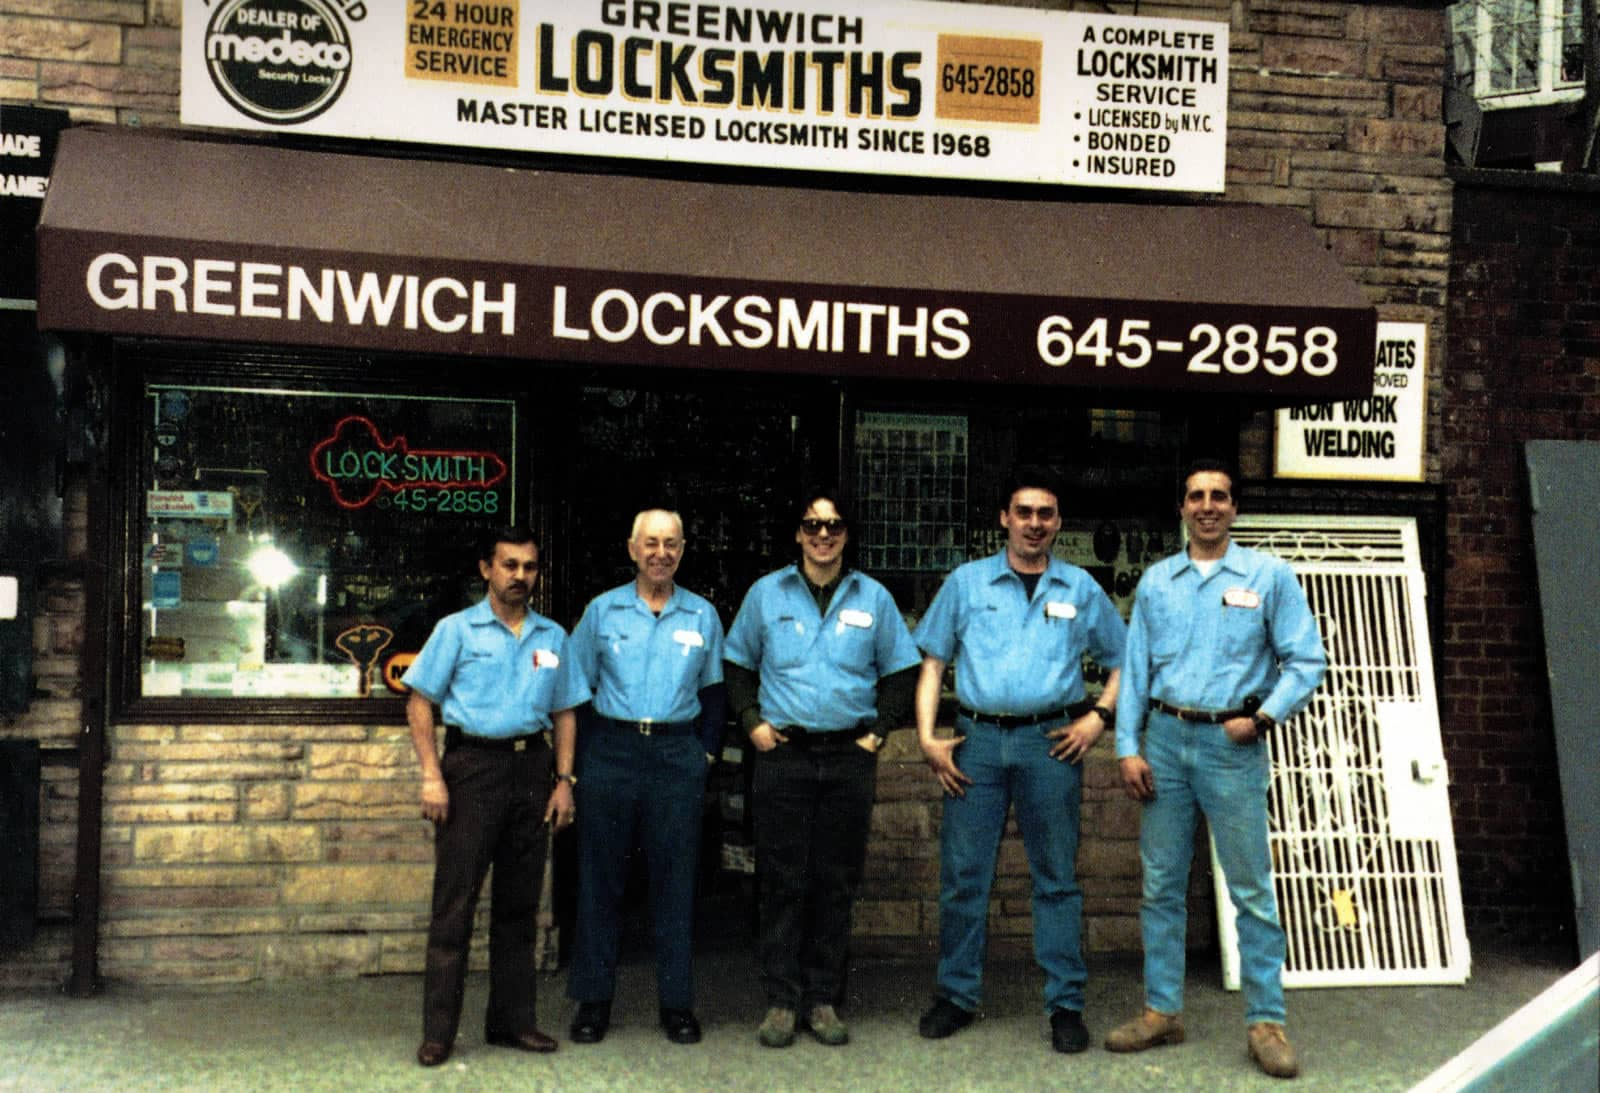 Greenwich Locksmiths has been providing commercial and residential locksmith services to NYC for over 40 years